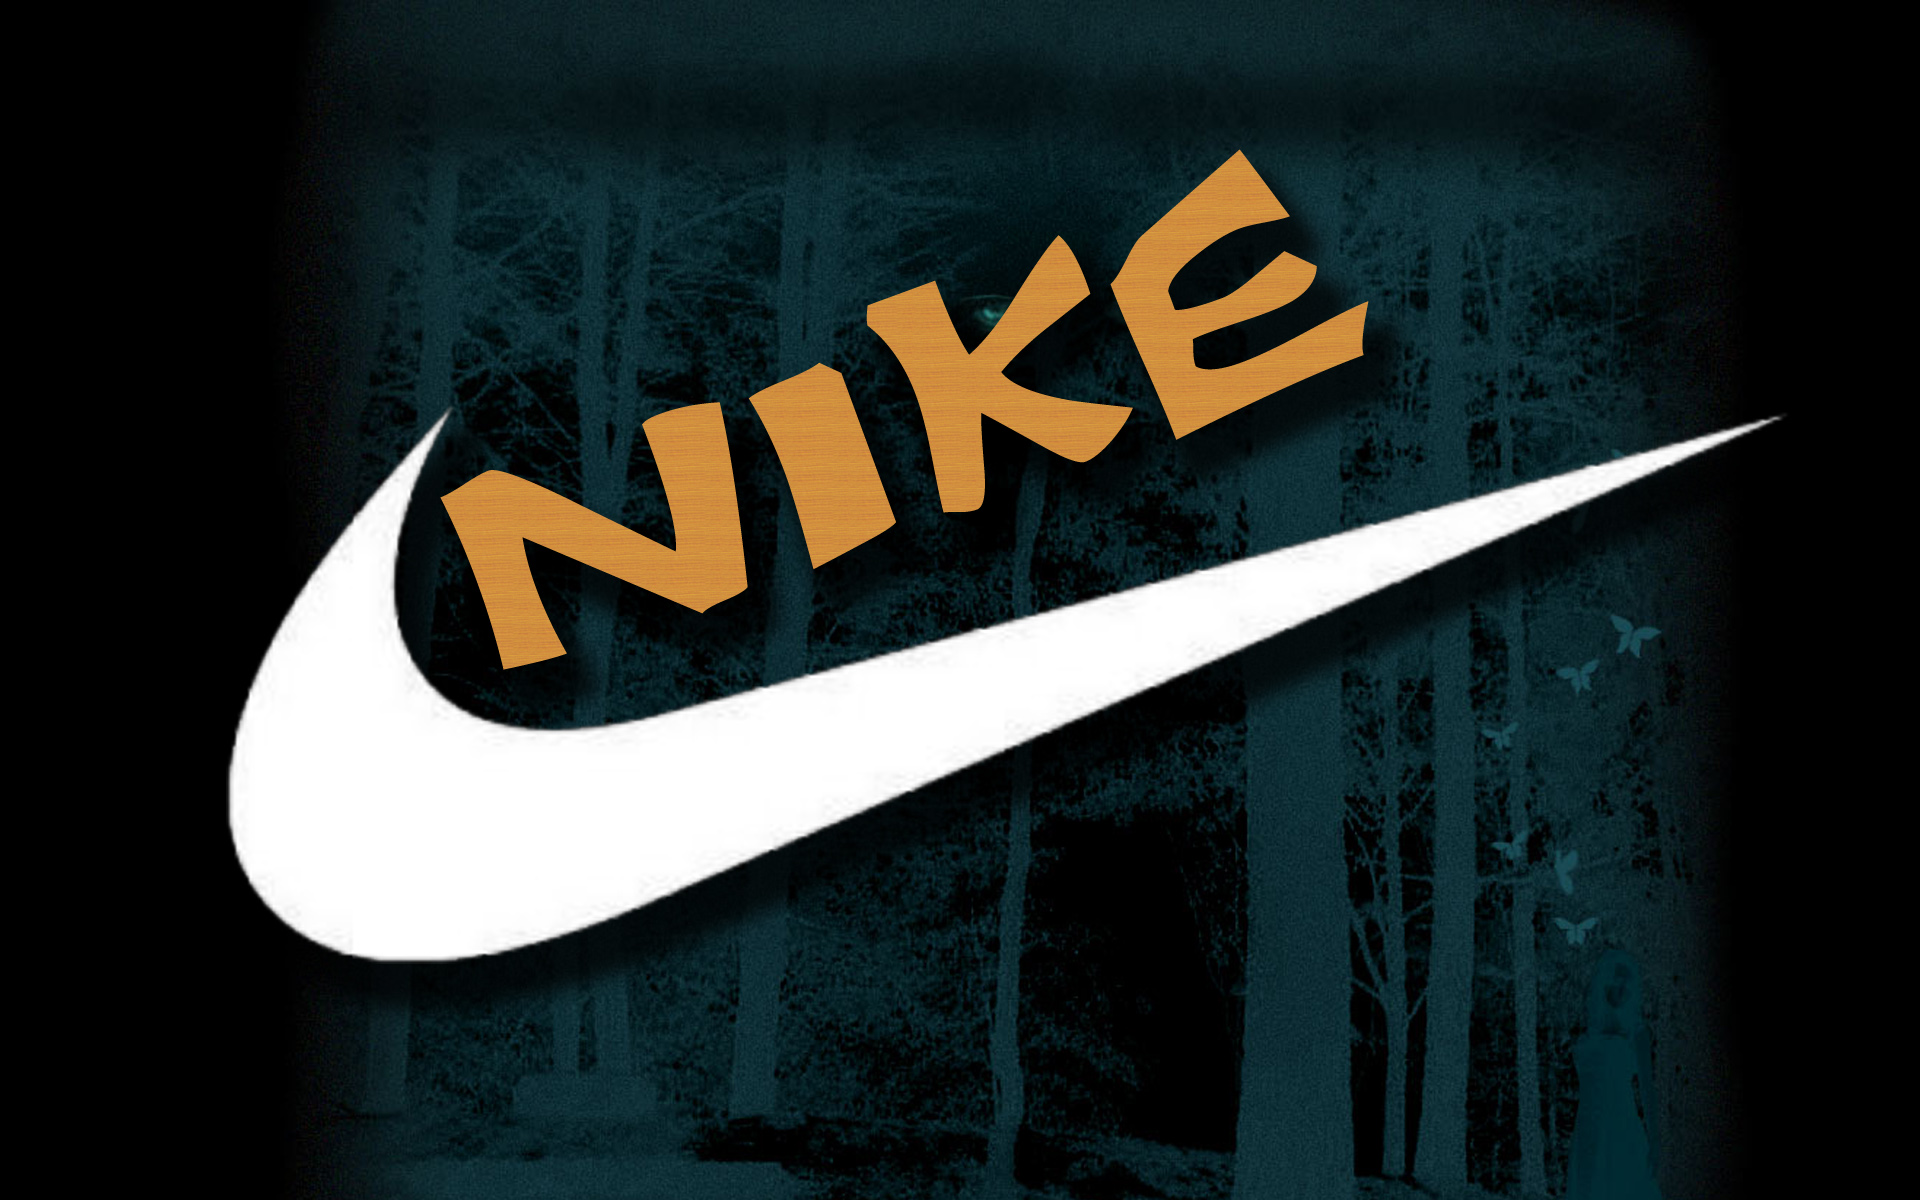 Nike Logo Cool Hd Wallpaper Download Cool Hd Wallpapers Here